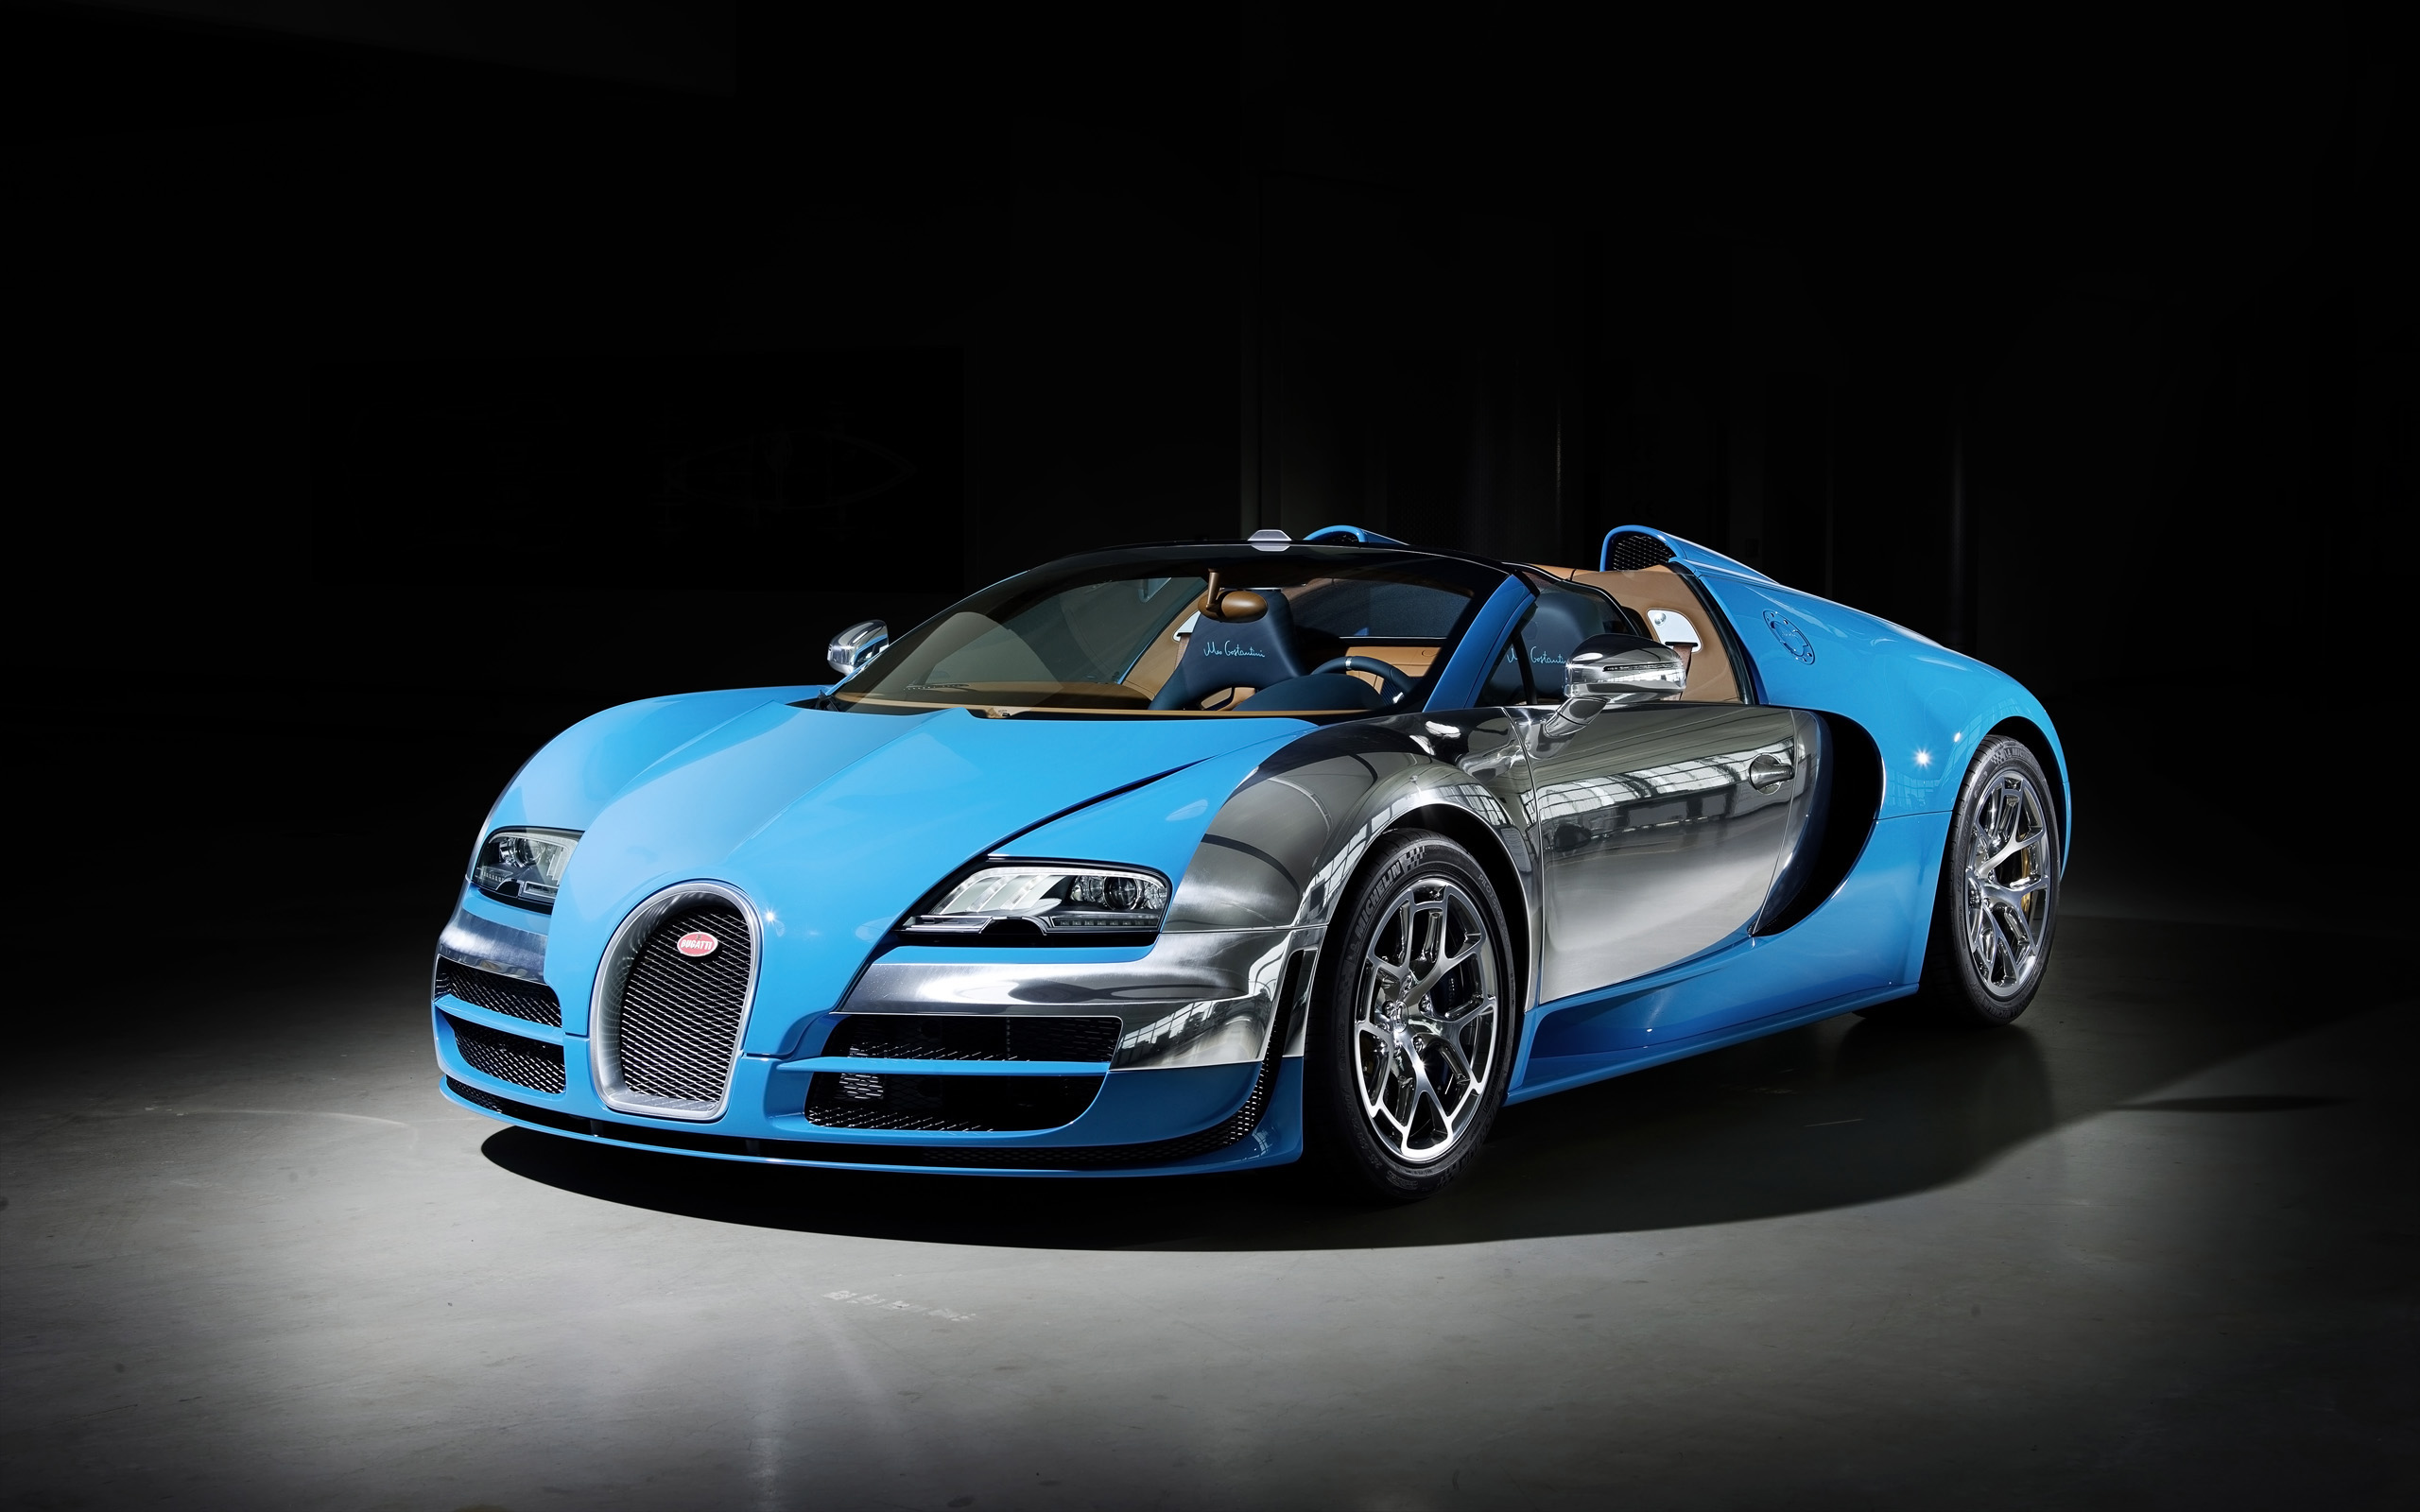 2013 bugatti veyron gr sport vitesse wallpapers | wallpapers hd